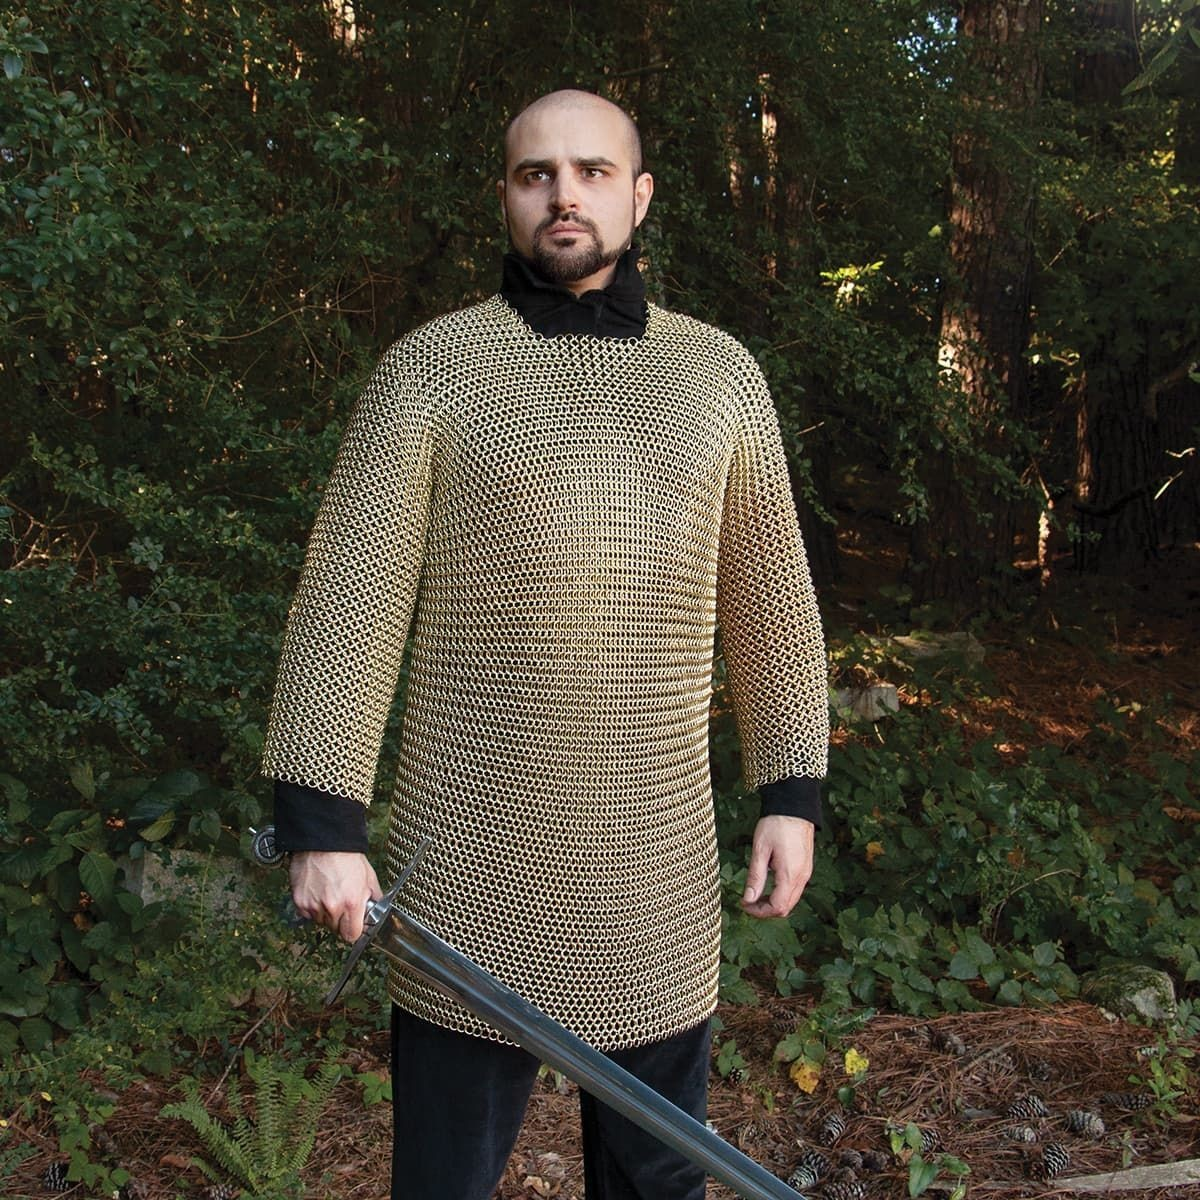 16 Gauge Butted Steel Plated Brass Mail Armor Shirt